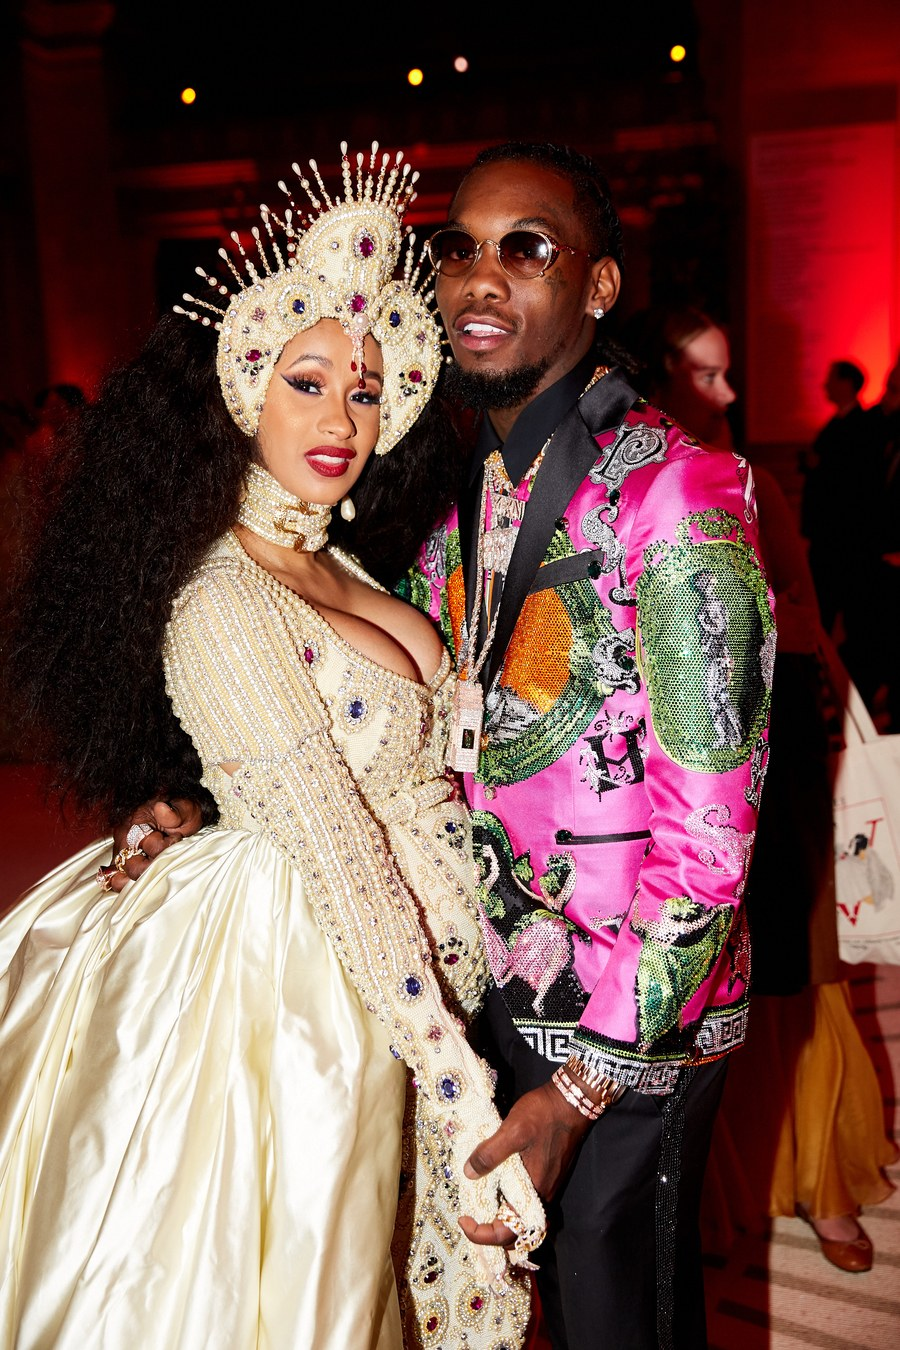 Cardi B Child: Cardi B And Offset Welcome A Baby Girl